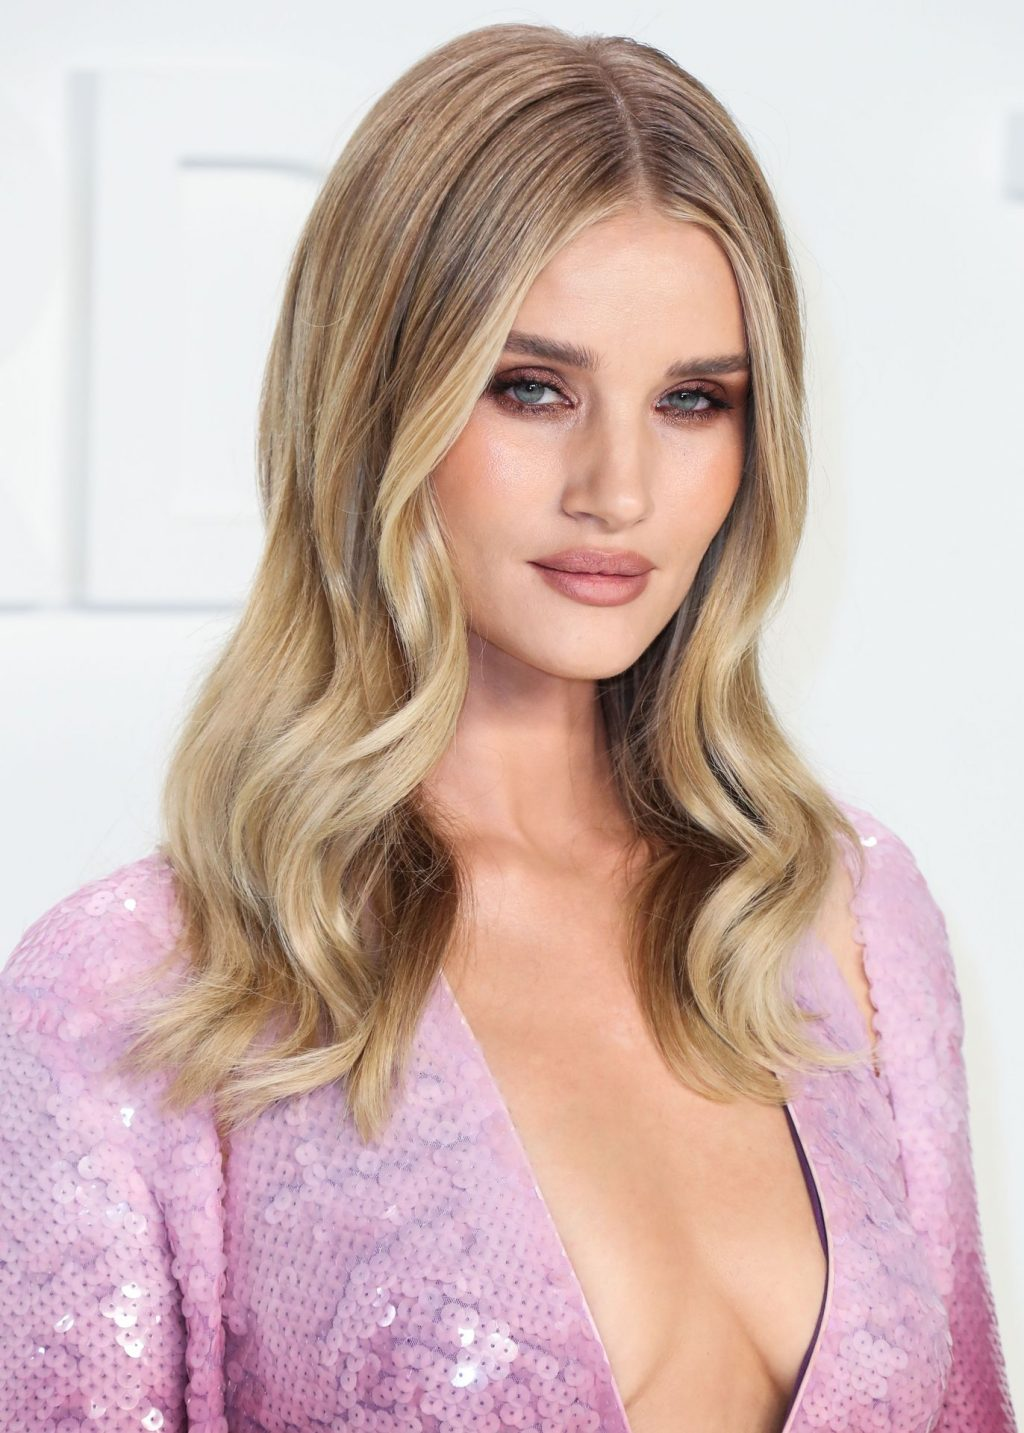 Rosie Huntington Whiteley Sexy The Fappening Blog 110 1024x1433 - Rosie Huntington-Whiteley Shows Her Cleavage at the Tom Ford Fashion Show (115 Photos)